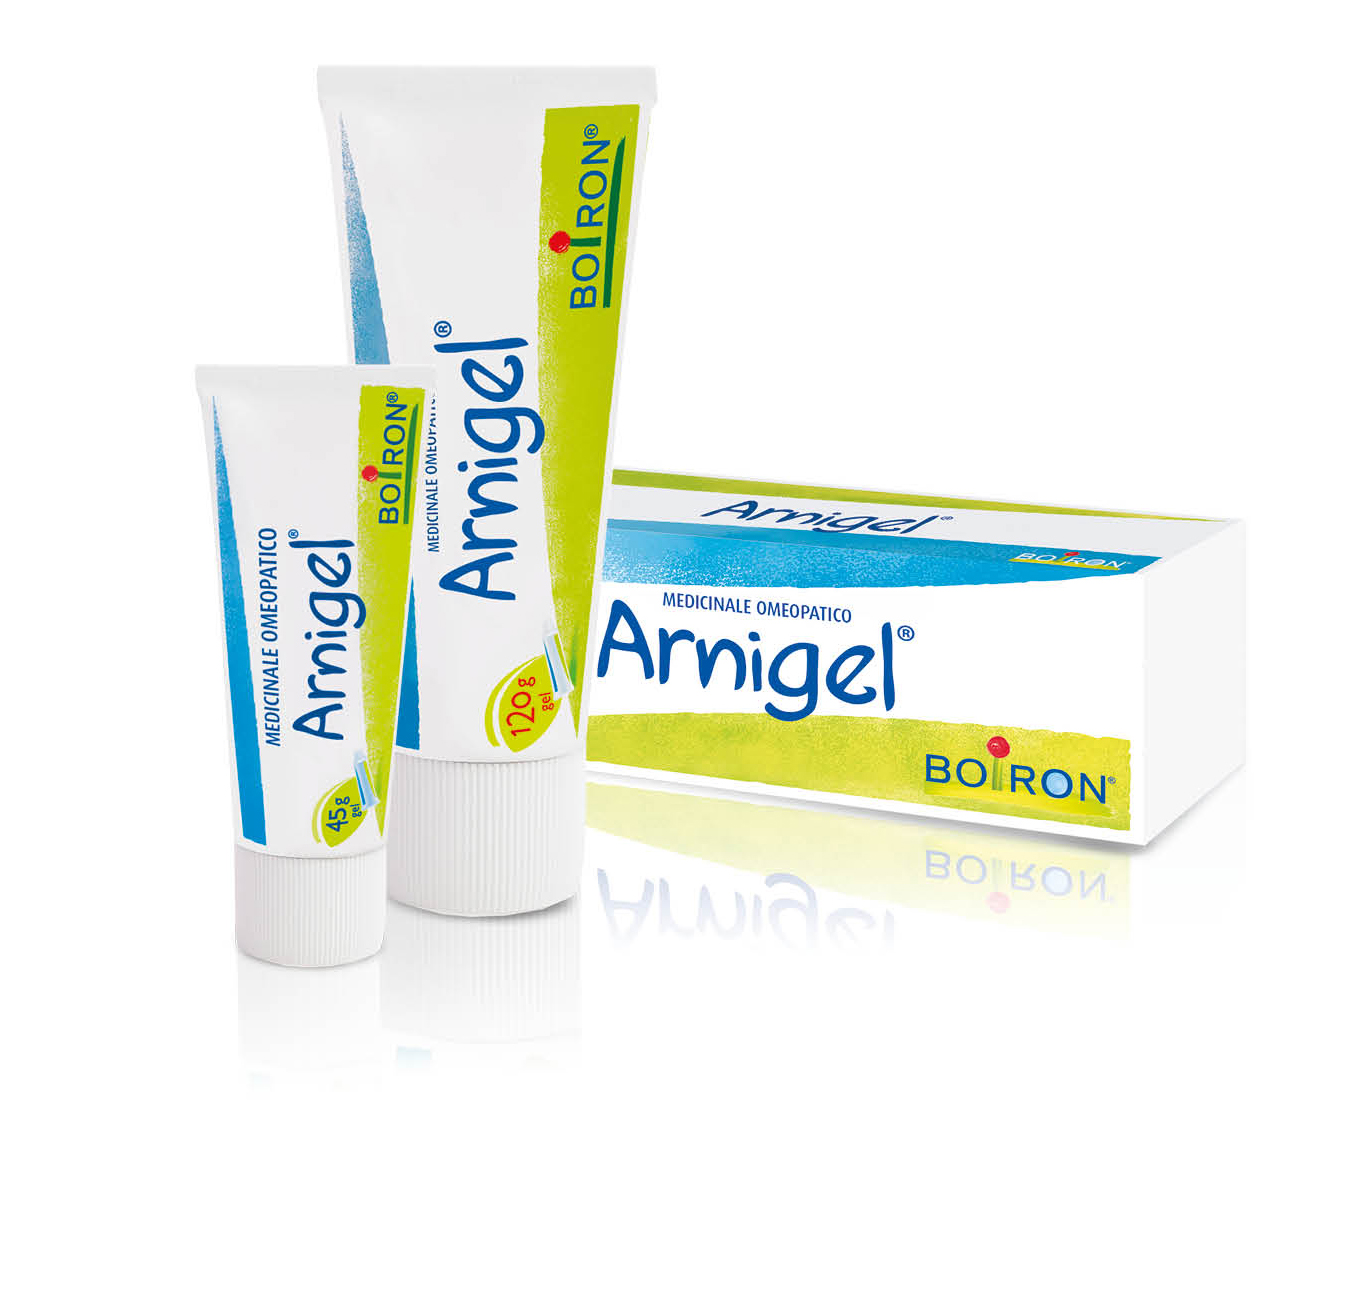 ARNIGEL*7% GEL TUBO 120G - farmaventura.it